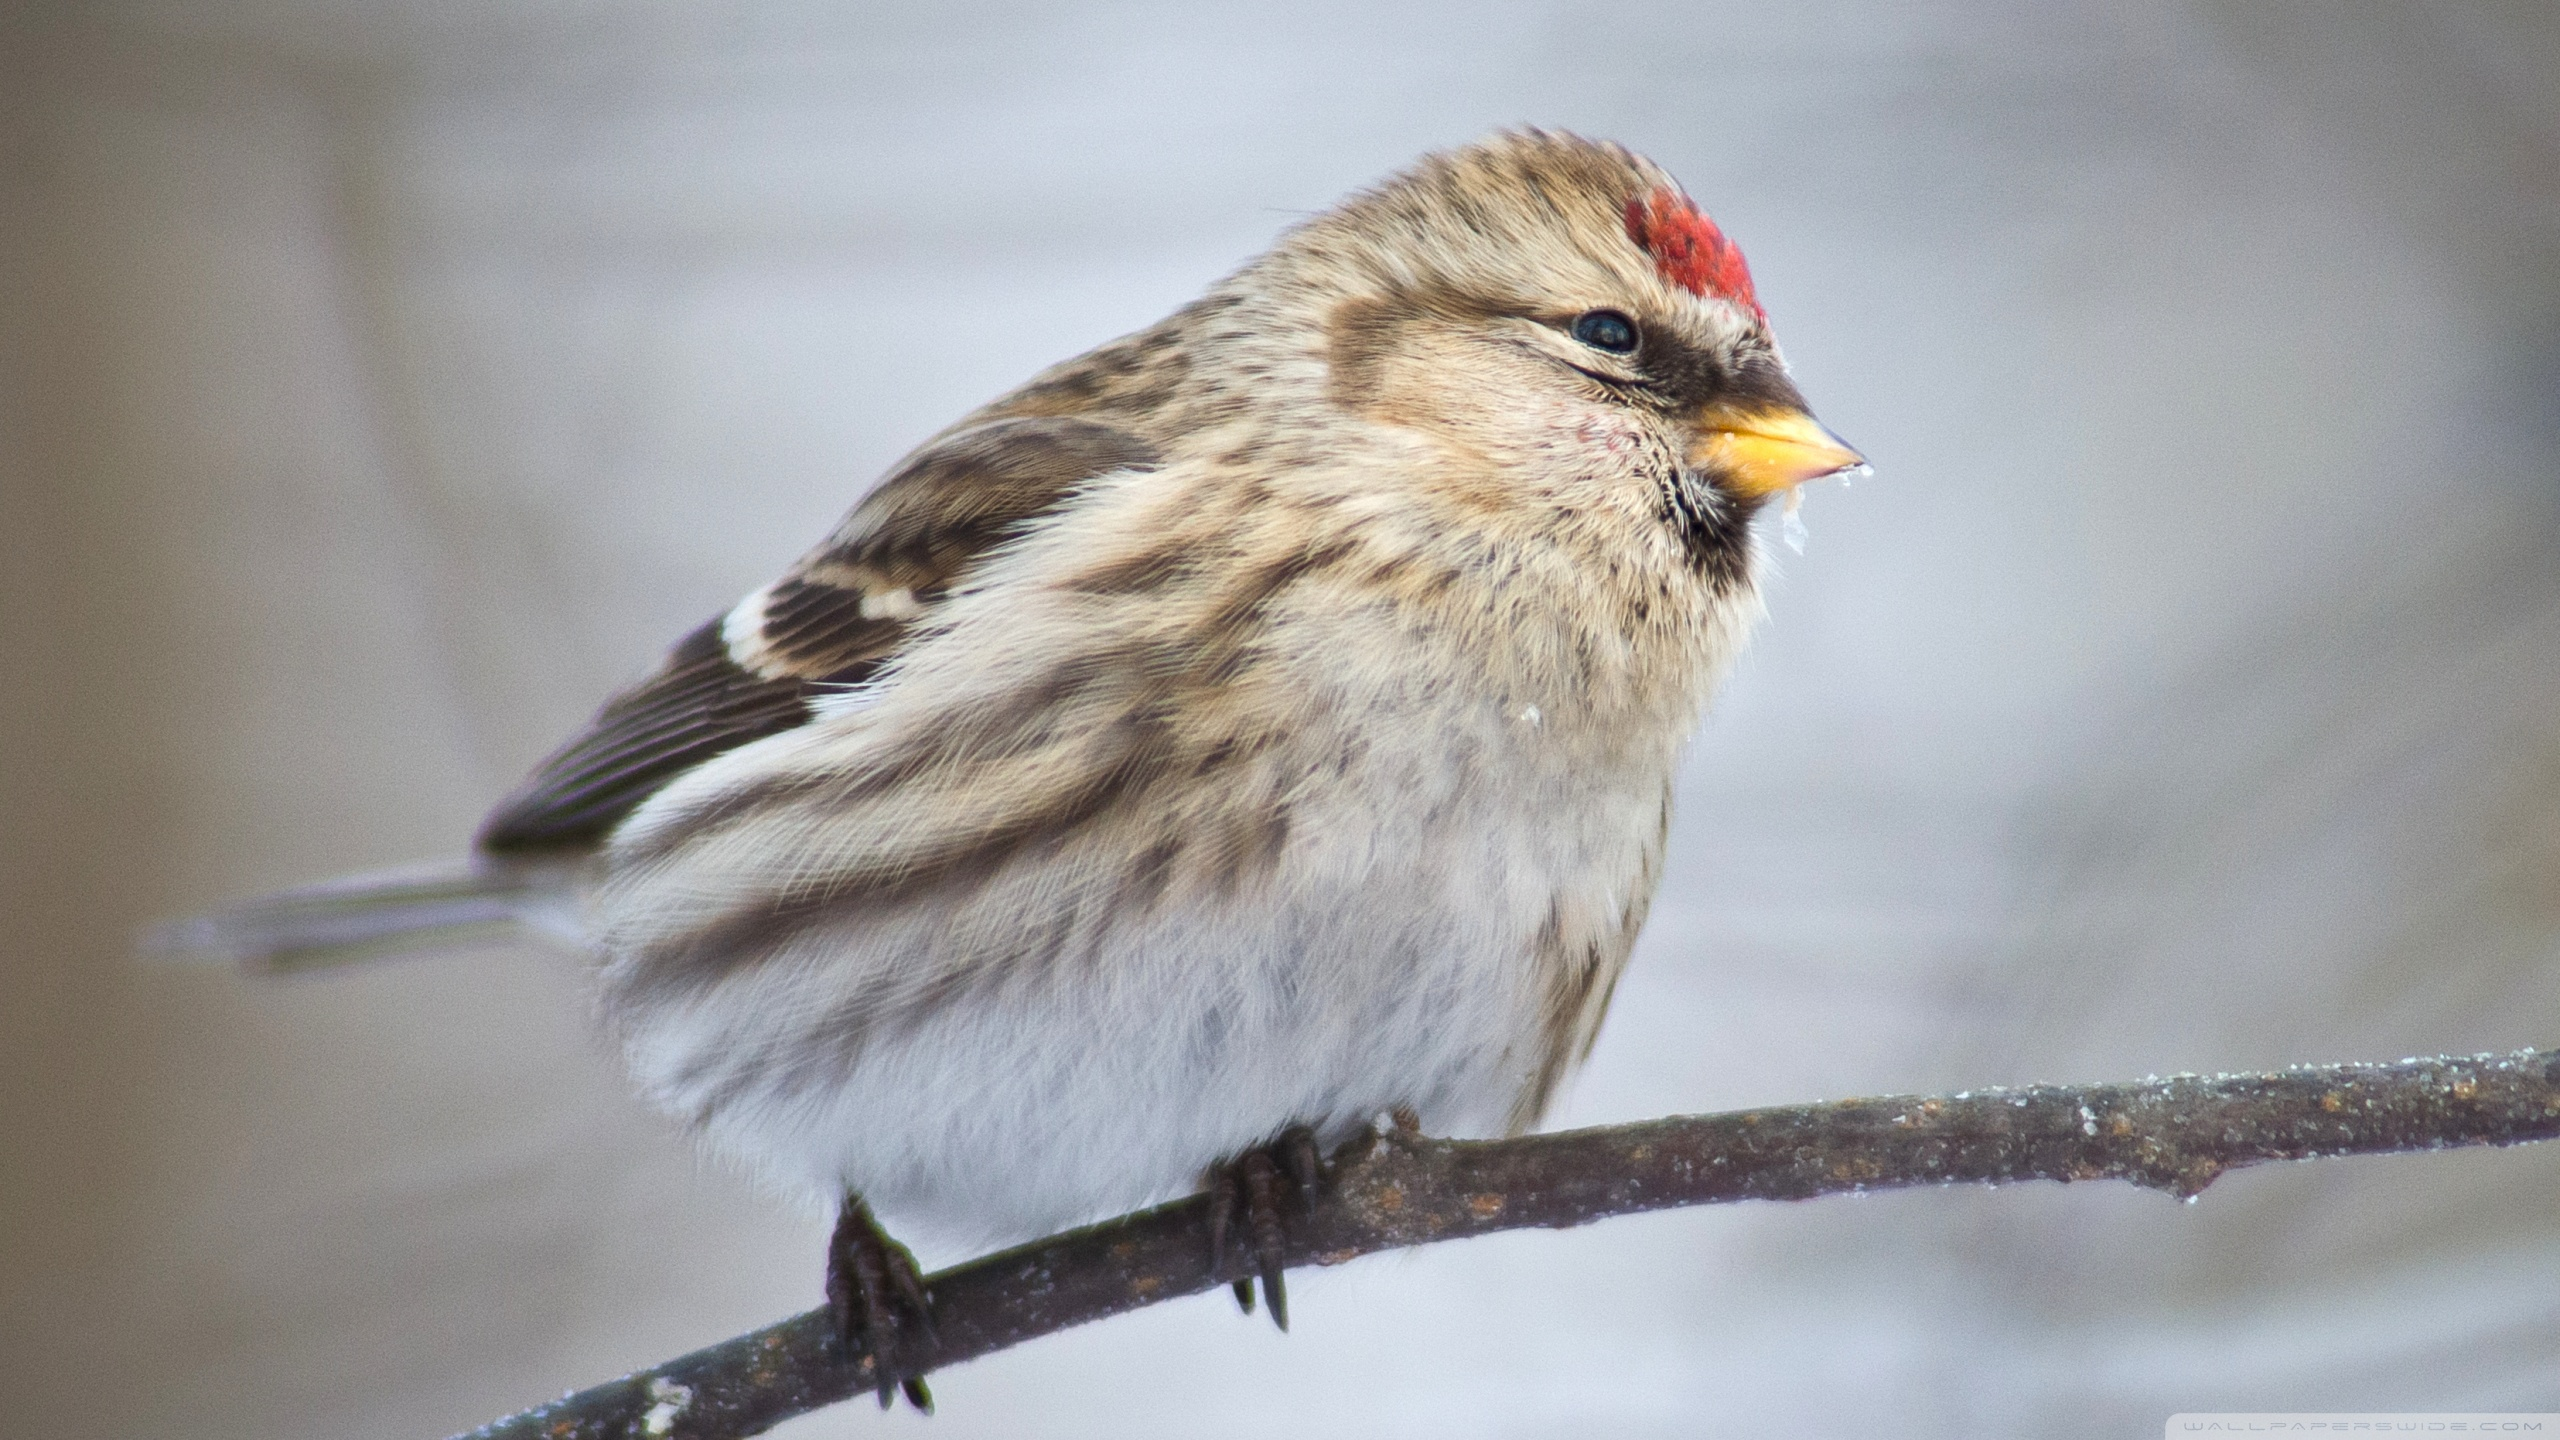 Common Redpoll HD Wallpaper Background Image 2560x1440 ID 2560x1440